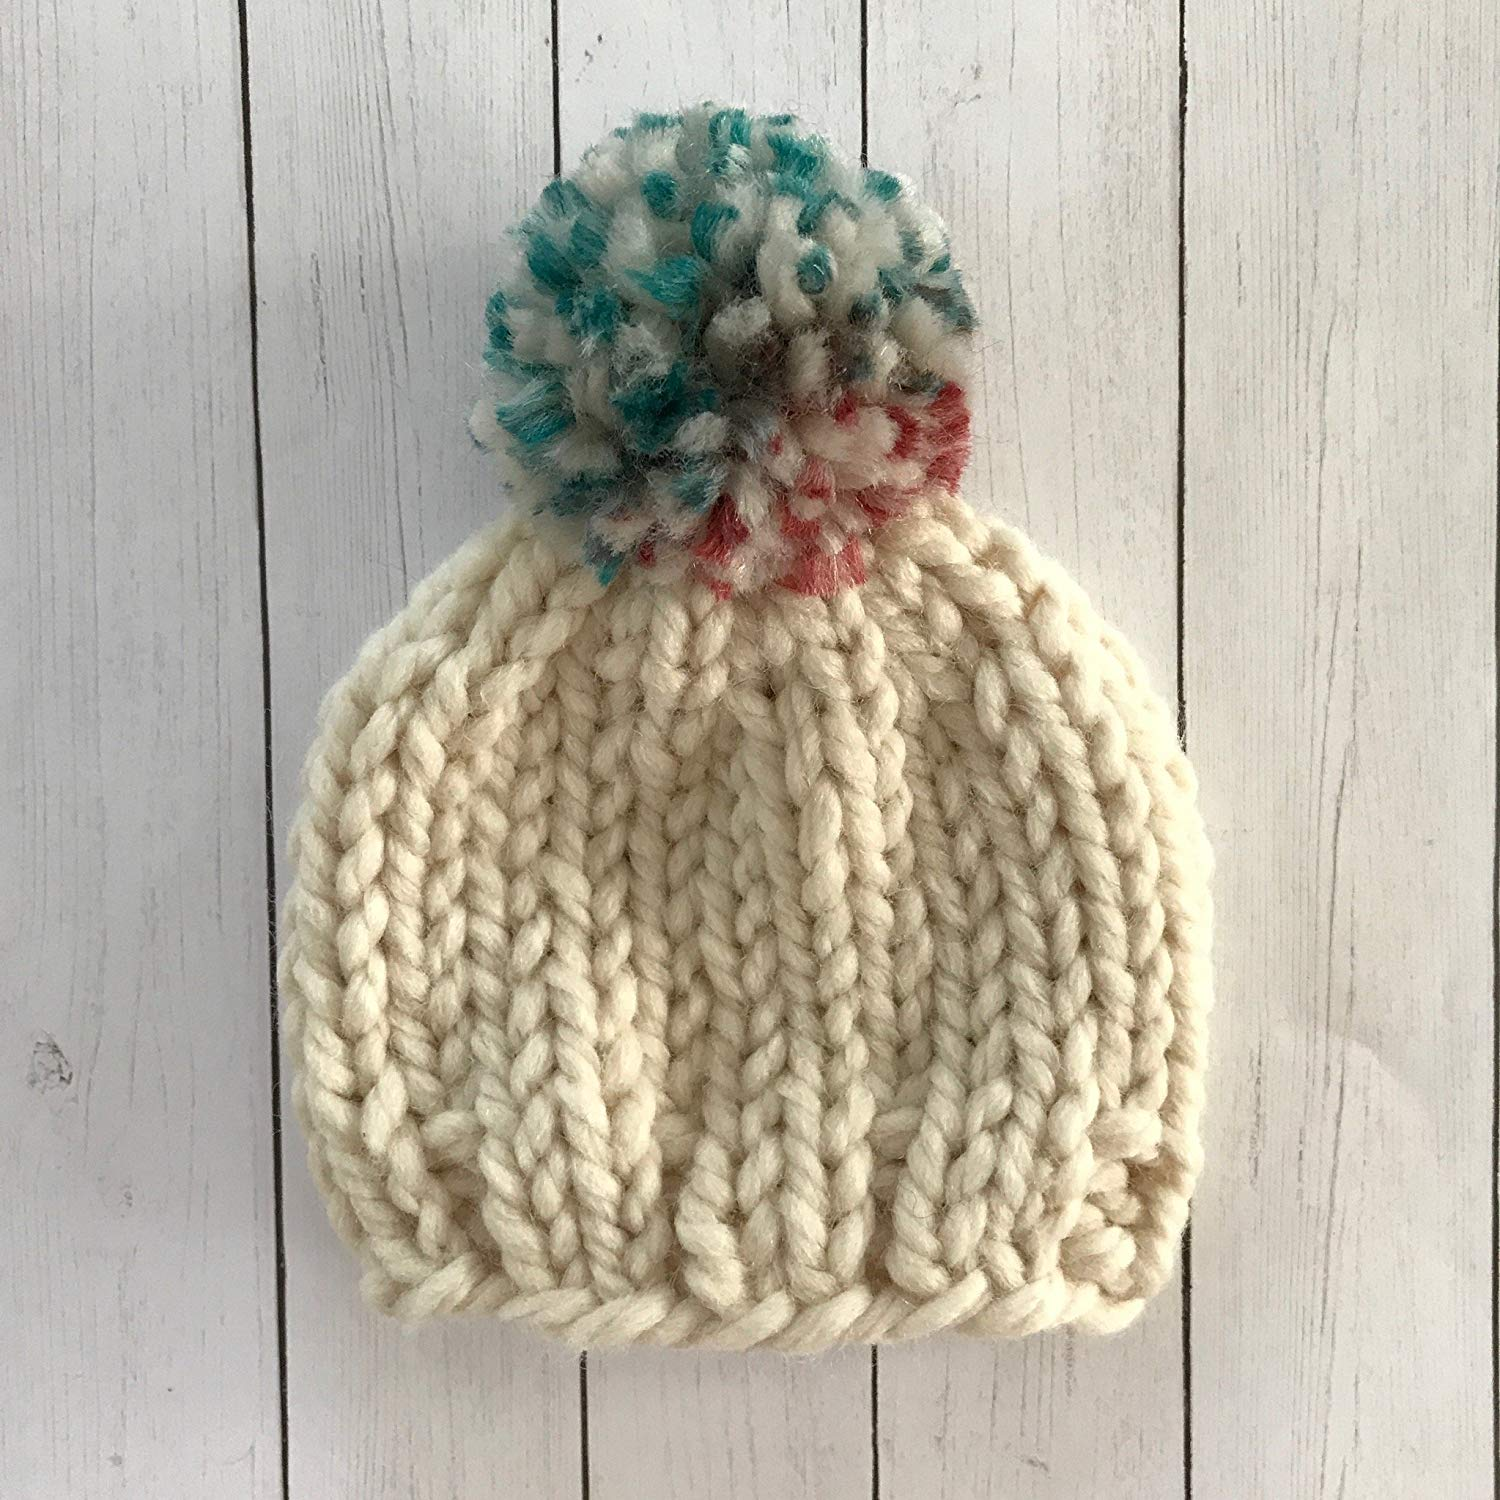 aa31ccdcf27 Get Quotations · Multi Colored Pompom Baby Beanie